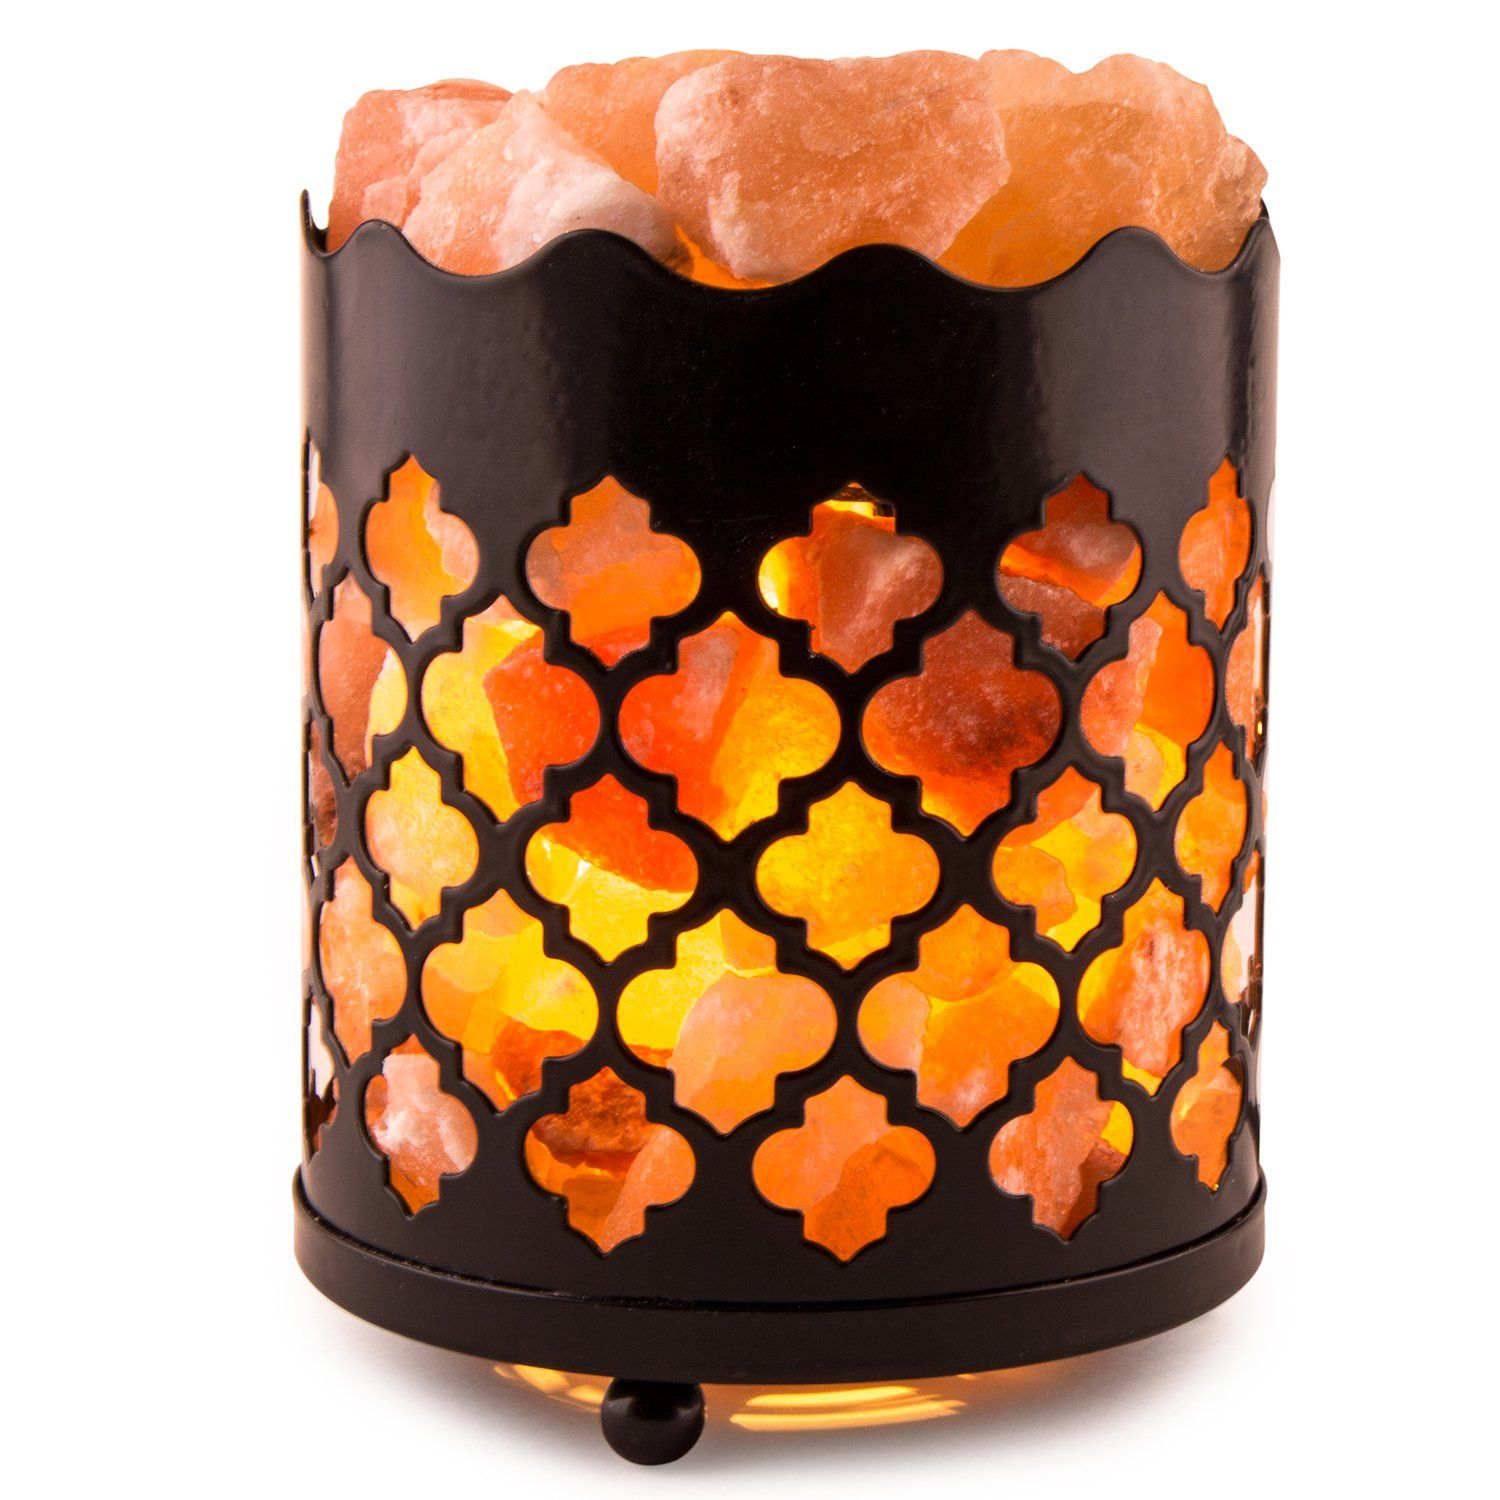 Lumiere Salt Lamp Crystal Decor Natural Himalayan Salt Lamp With Salt Chunks In